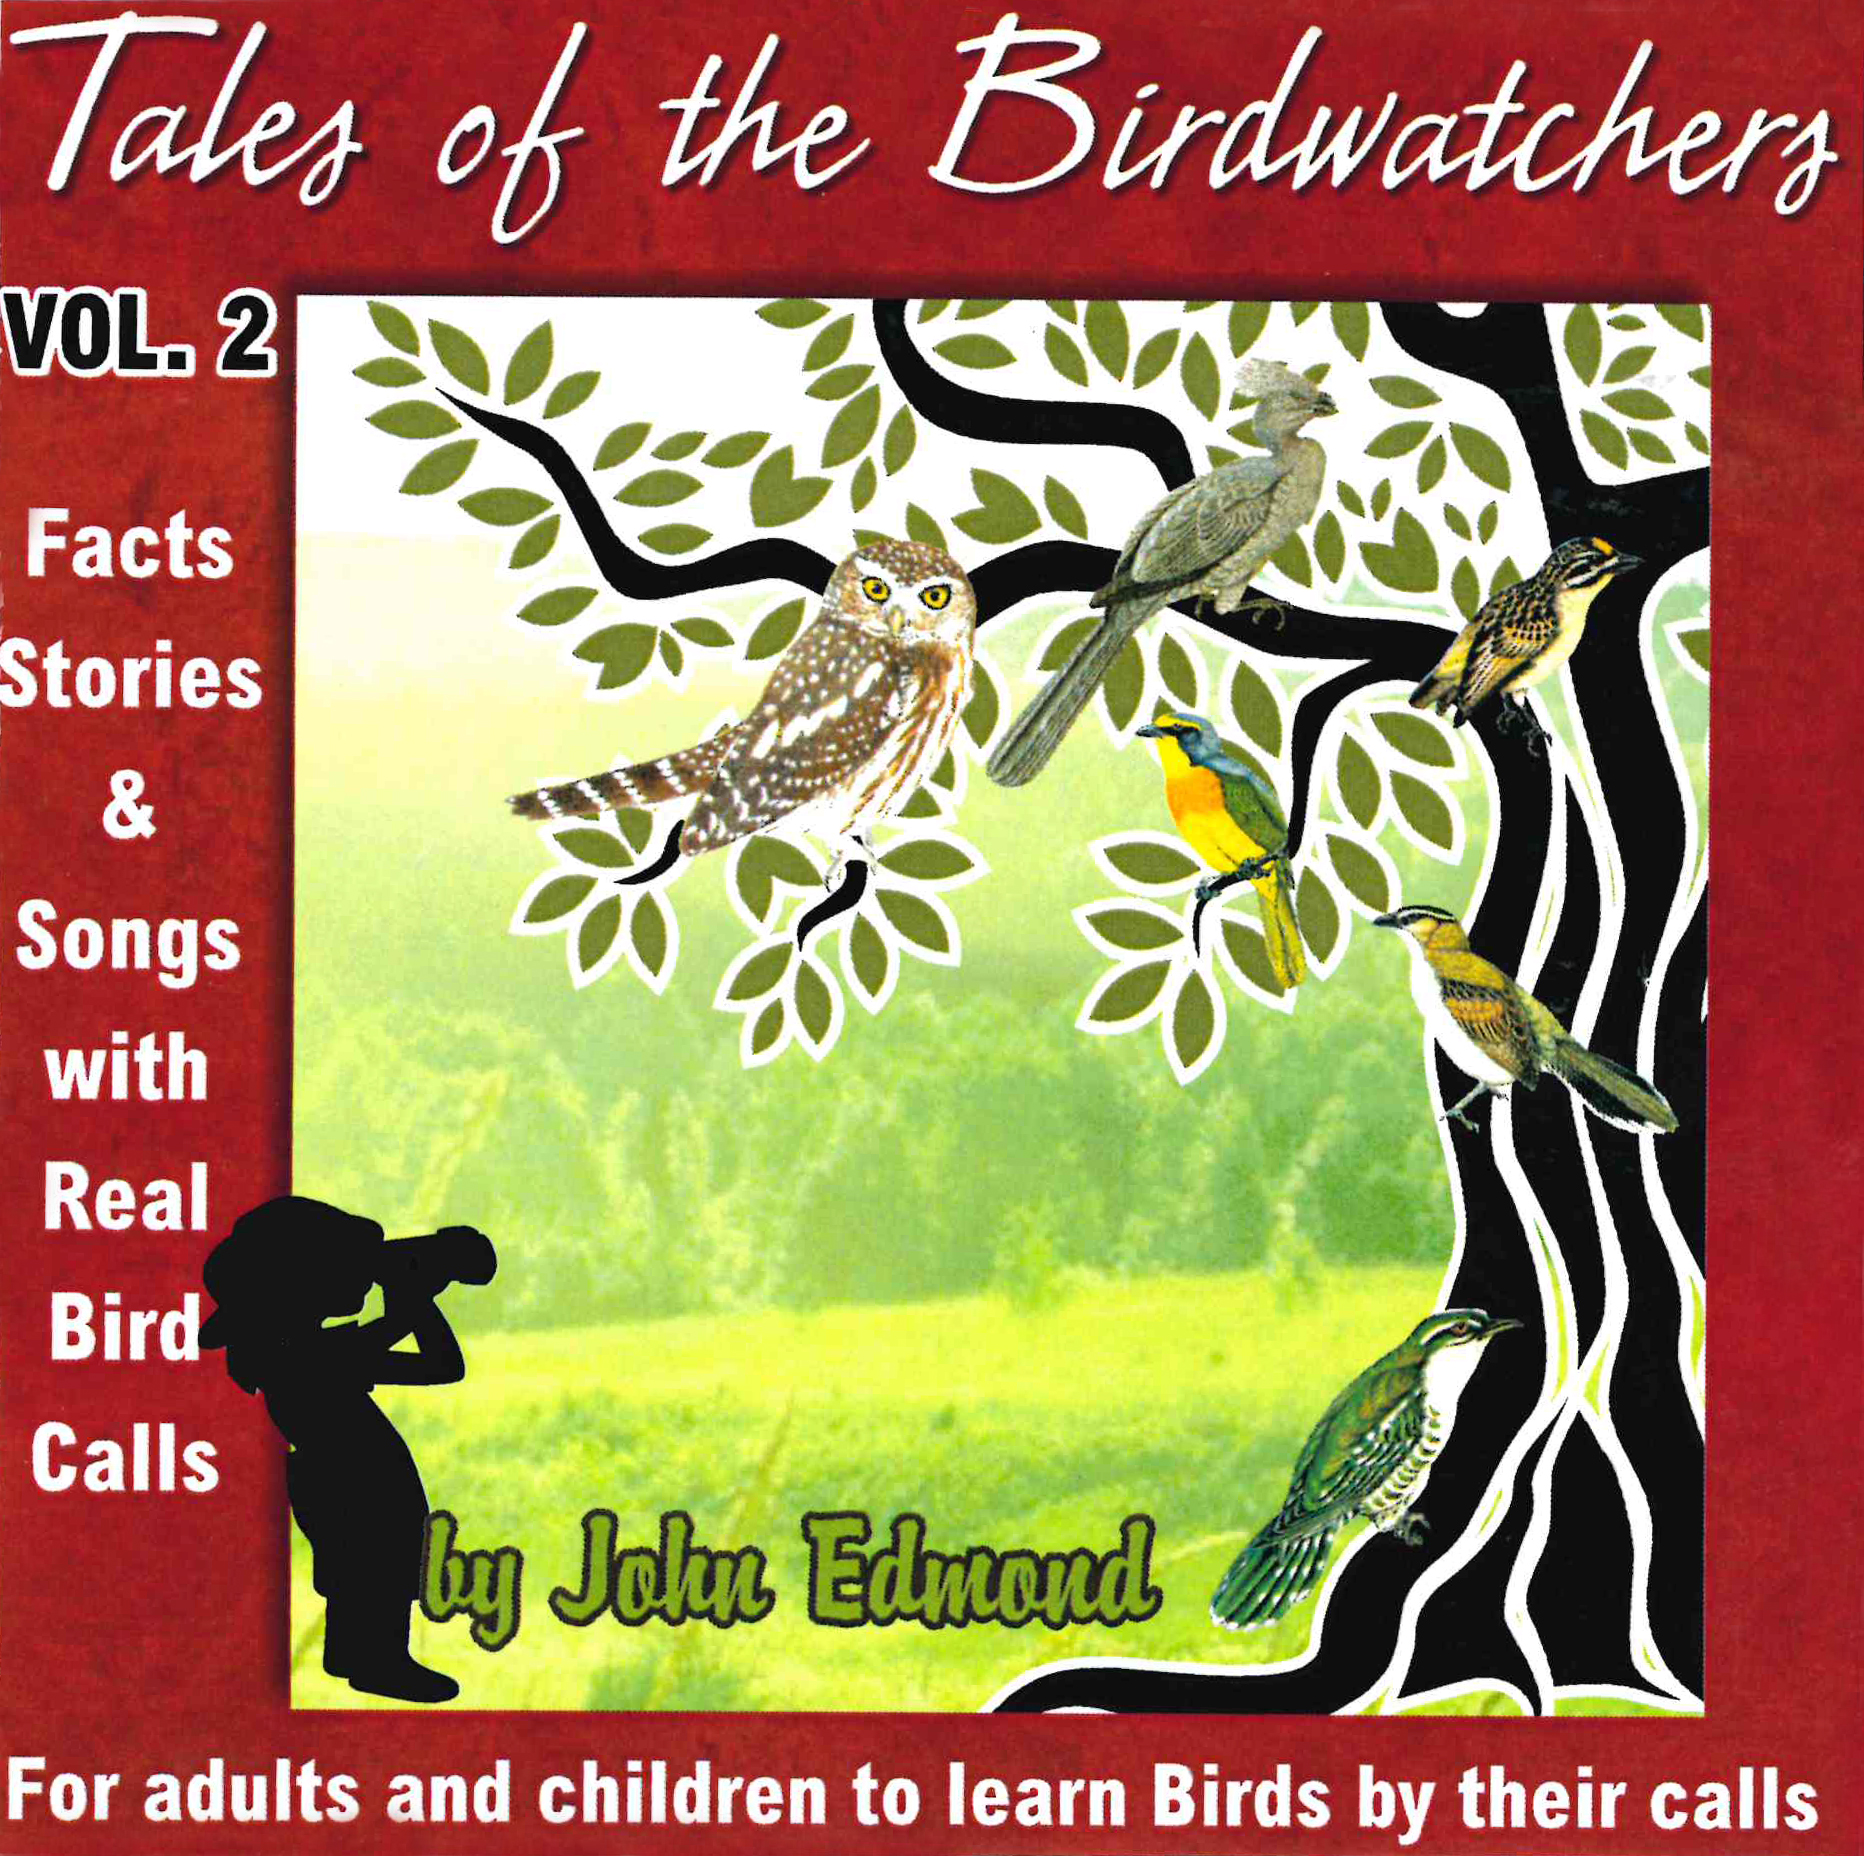 Tales of the Birdwatchers Vol 2.